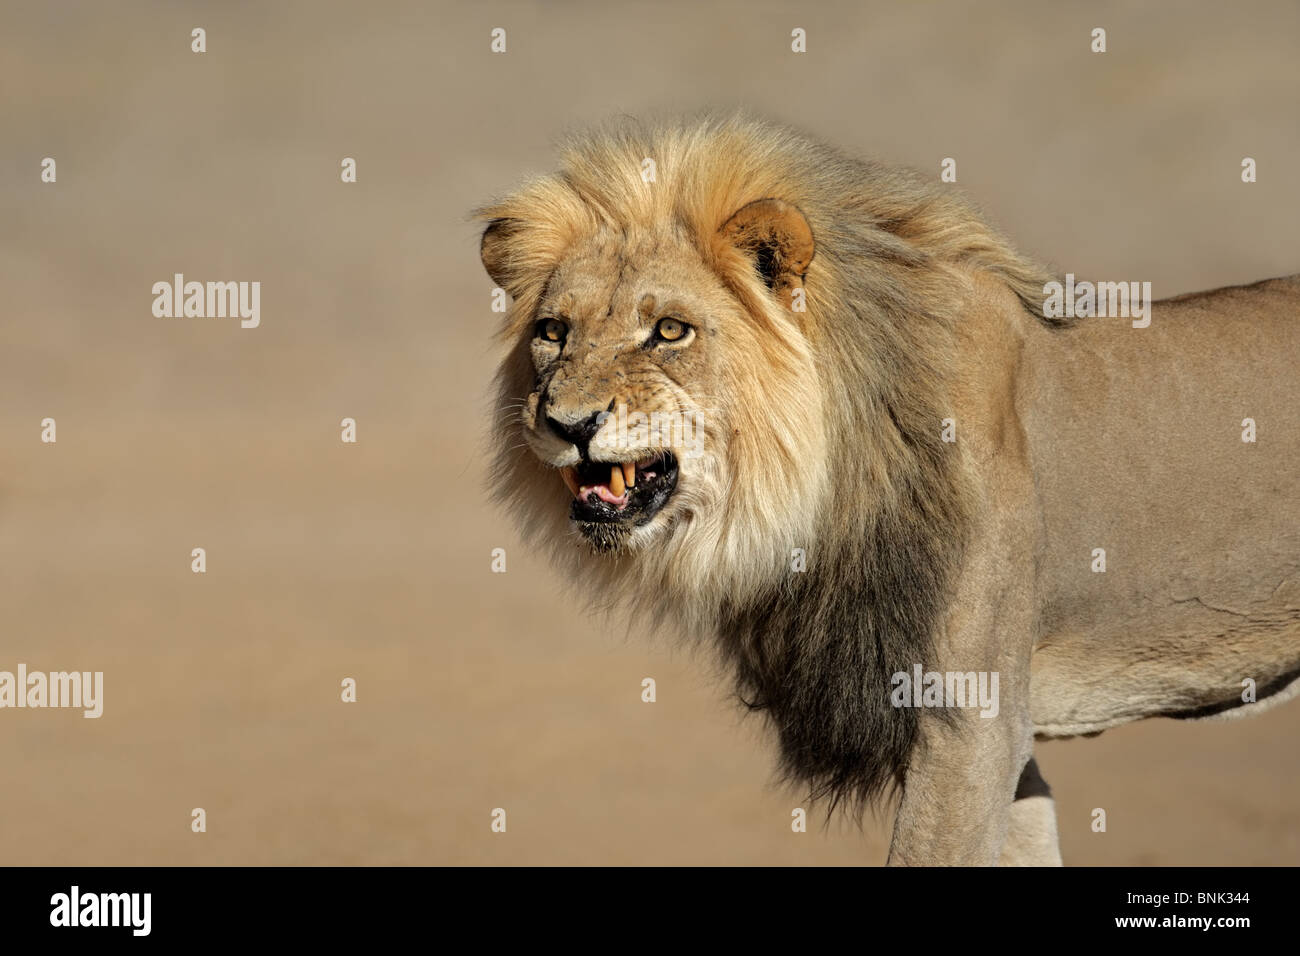 Snarling big male African lion (Panthera leo), Kalahari desert, South Africa - Stock Image